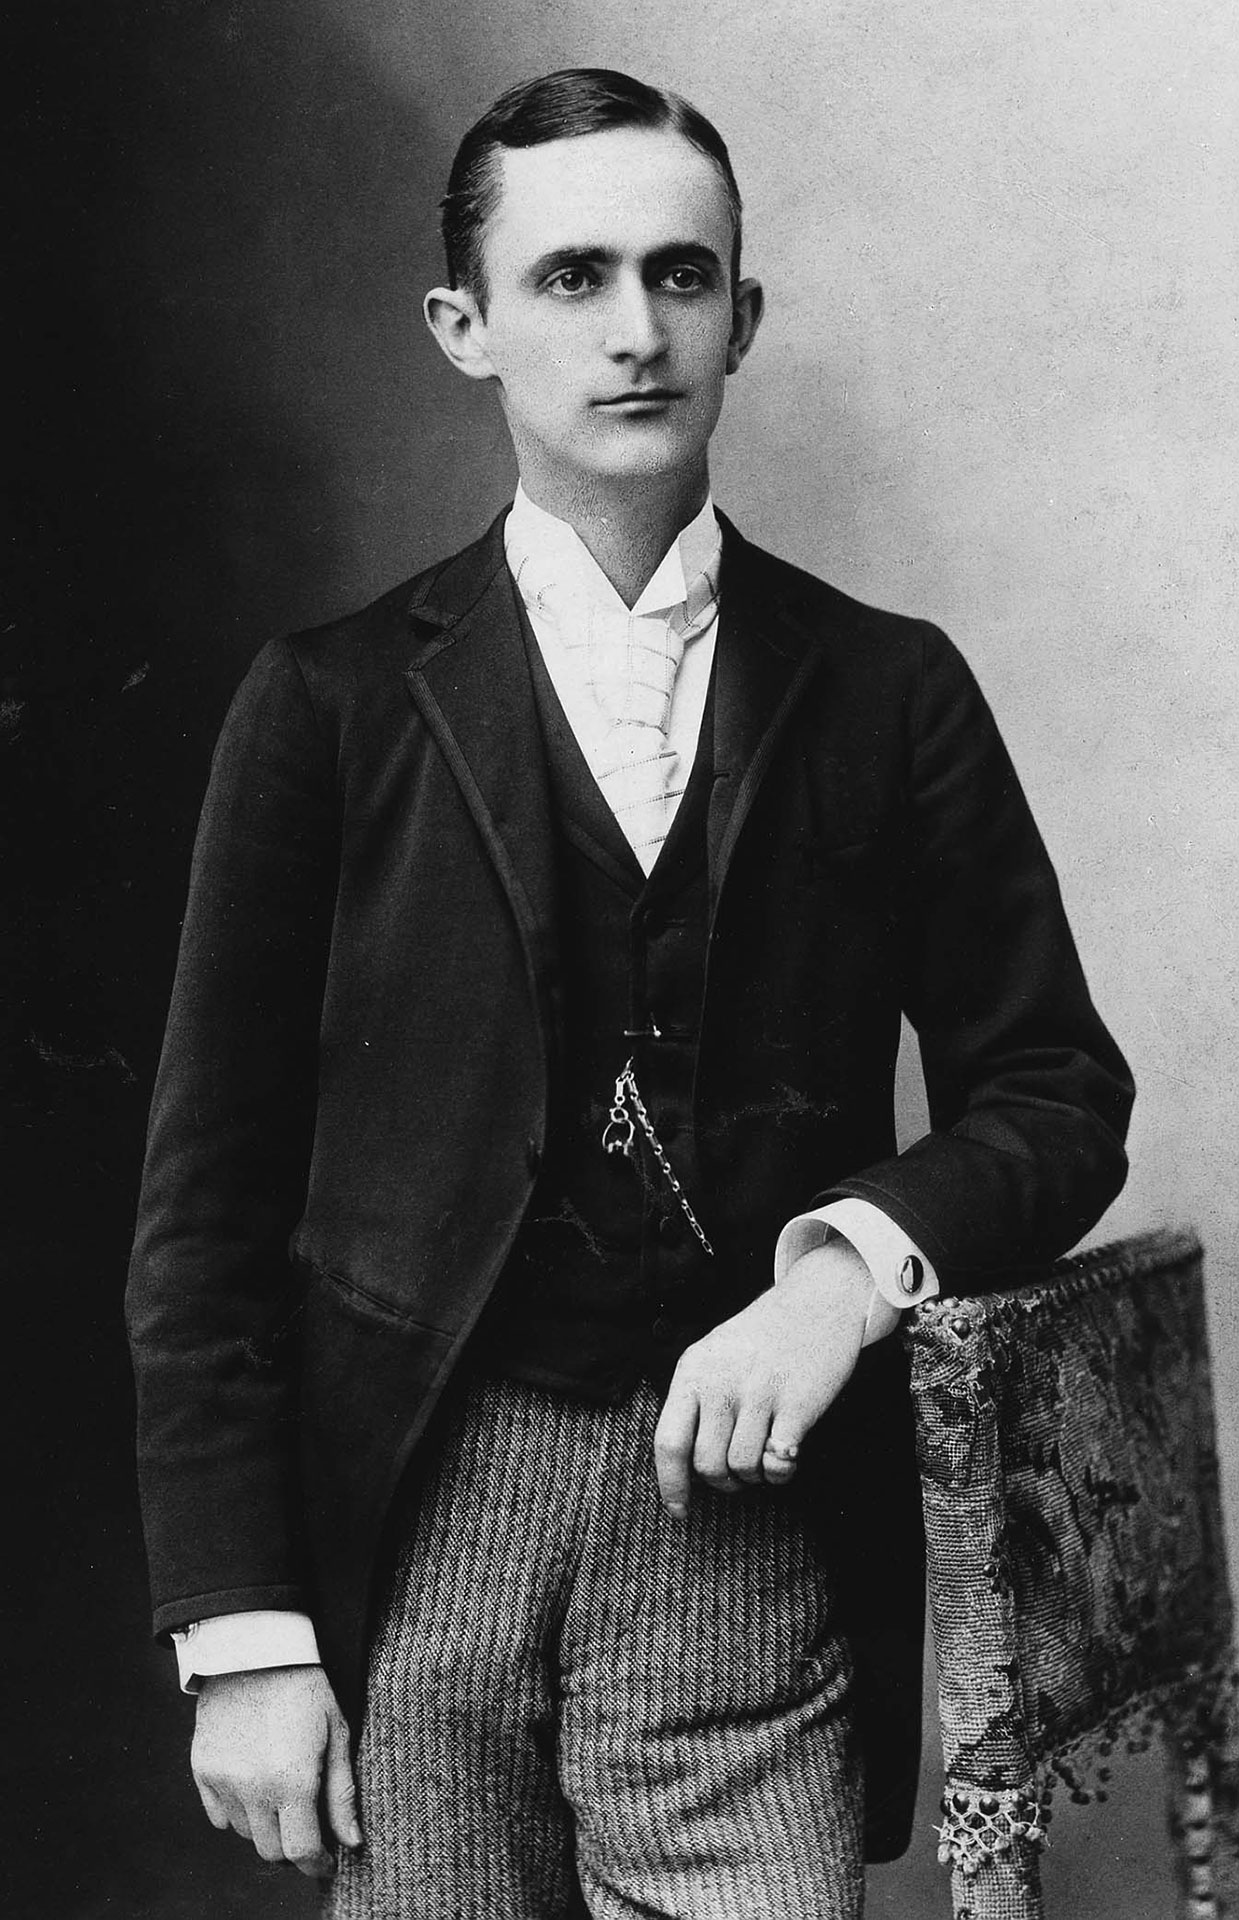 a biography of george eastman an american entreprenuer George eastman was an american entrepreneur who founded the eastman kodak company and popularized the use of roll film, helping to bring photography to the mainstream.